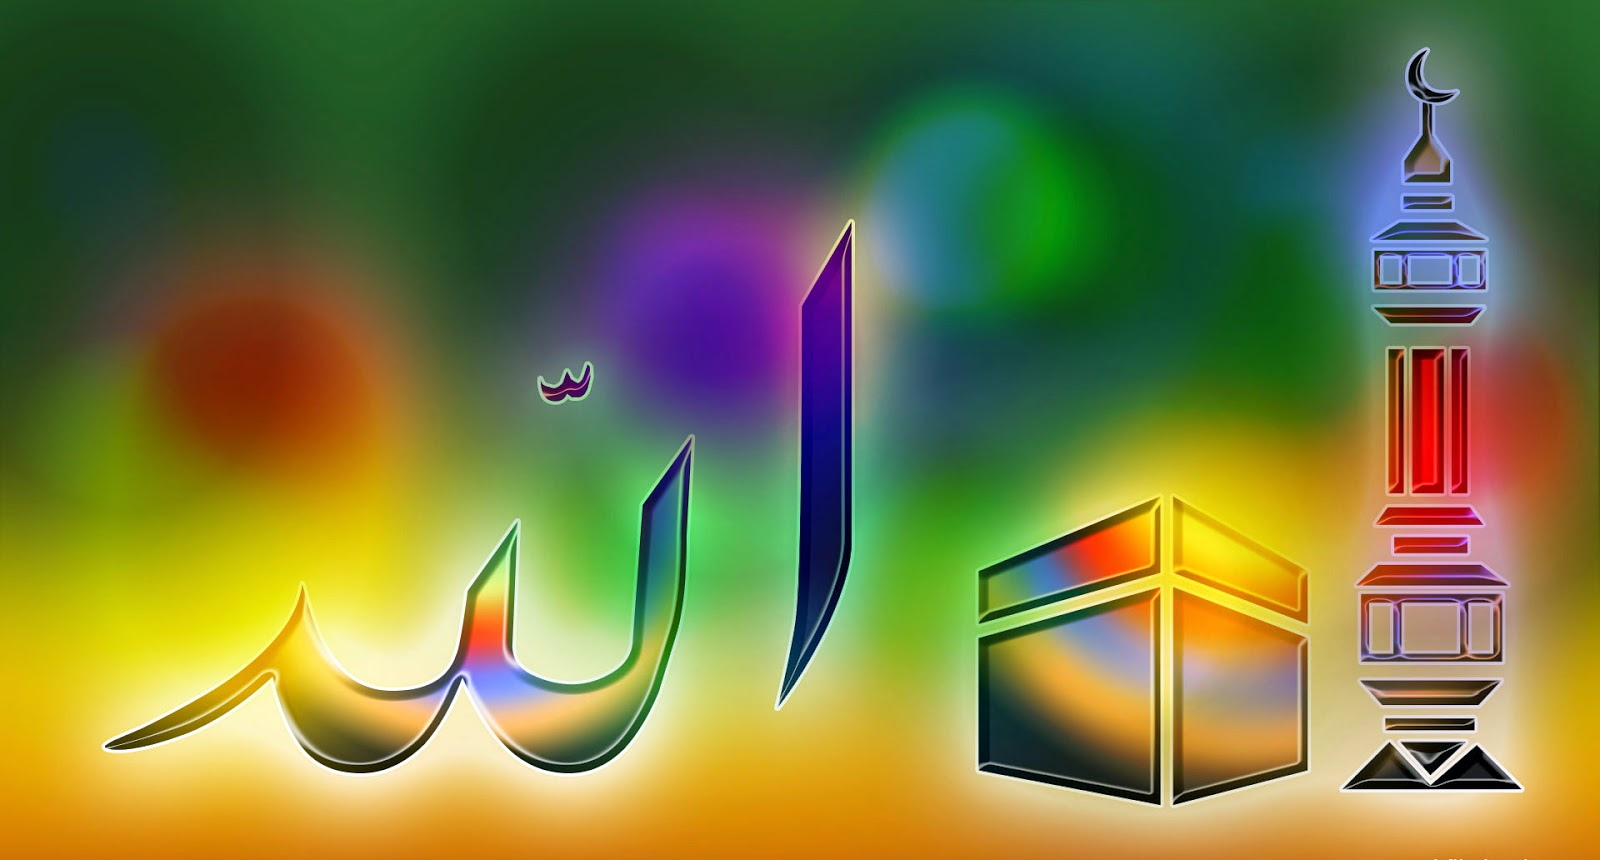 Hd wallpaper name - Allah Name Desktop Wallpaper Allah Hd Wallpaper Allah Name Islam